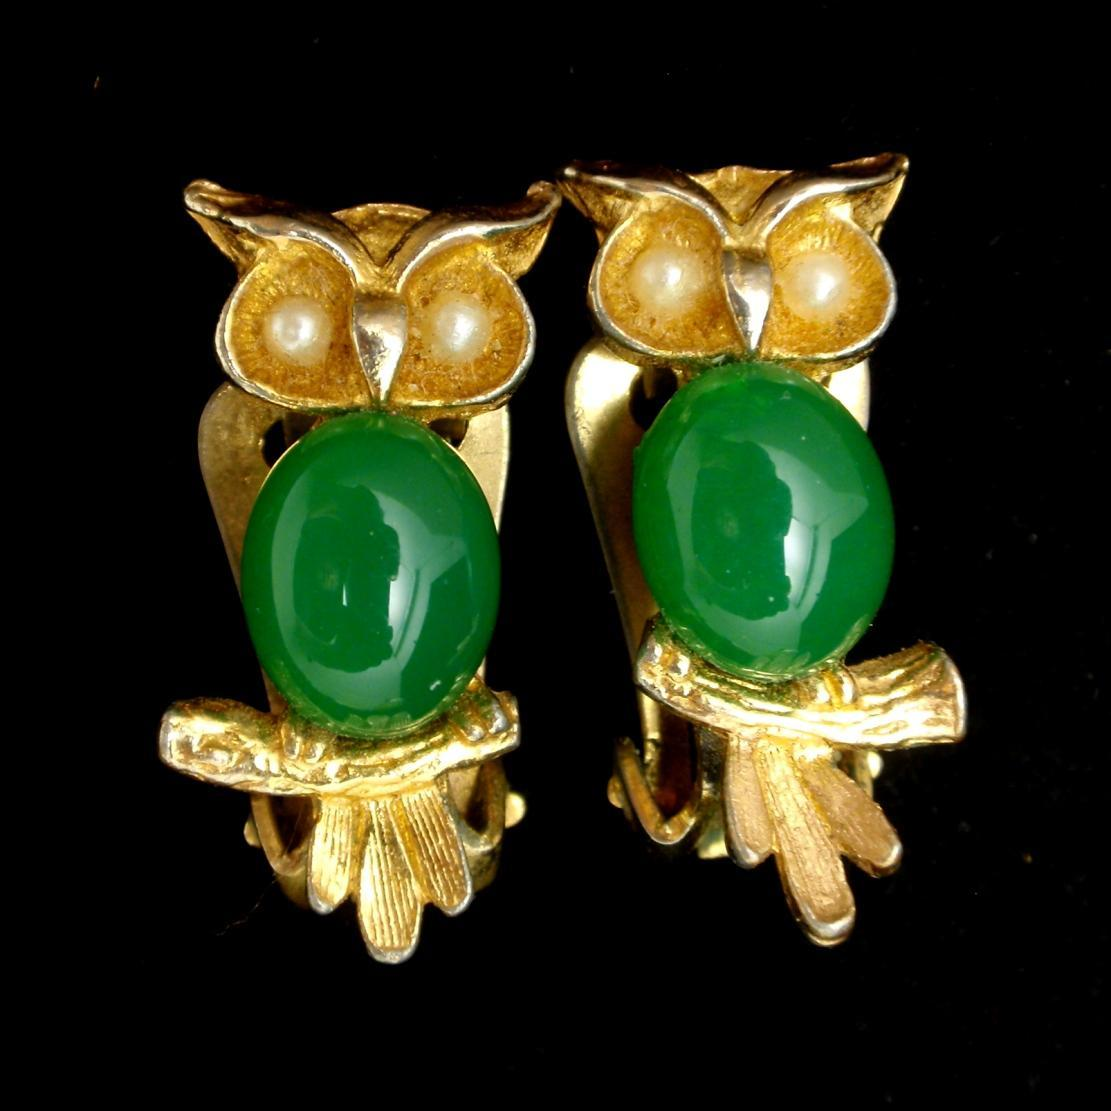 Owl Earrings Vintage Figural Earrings by Hobe